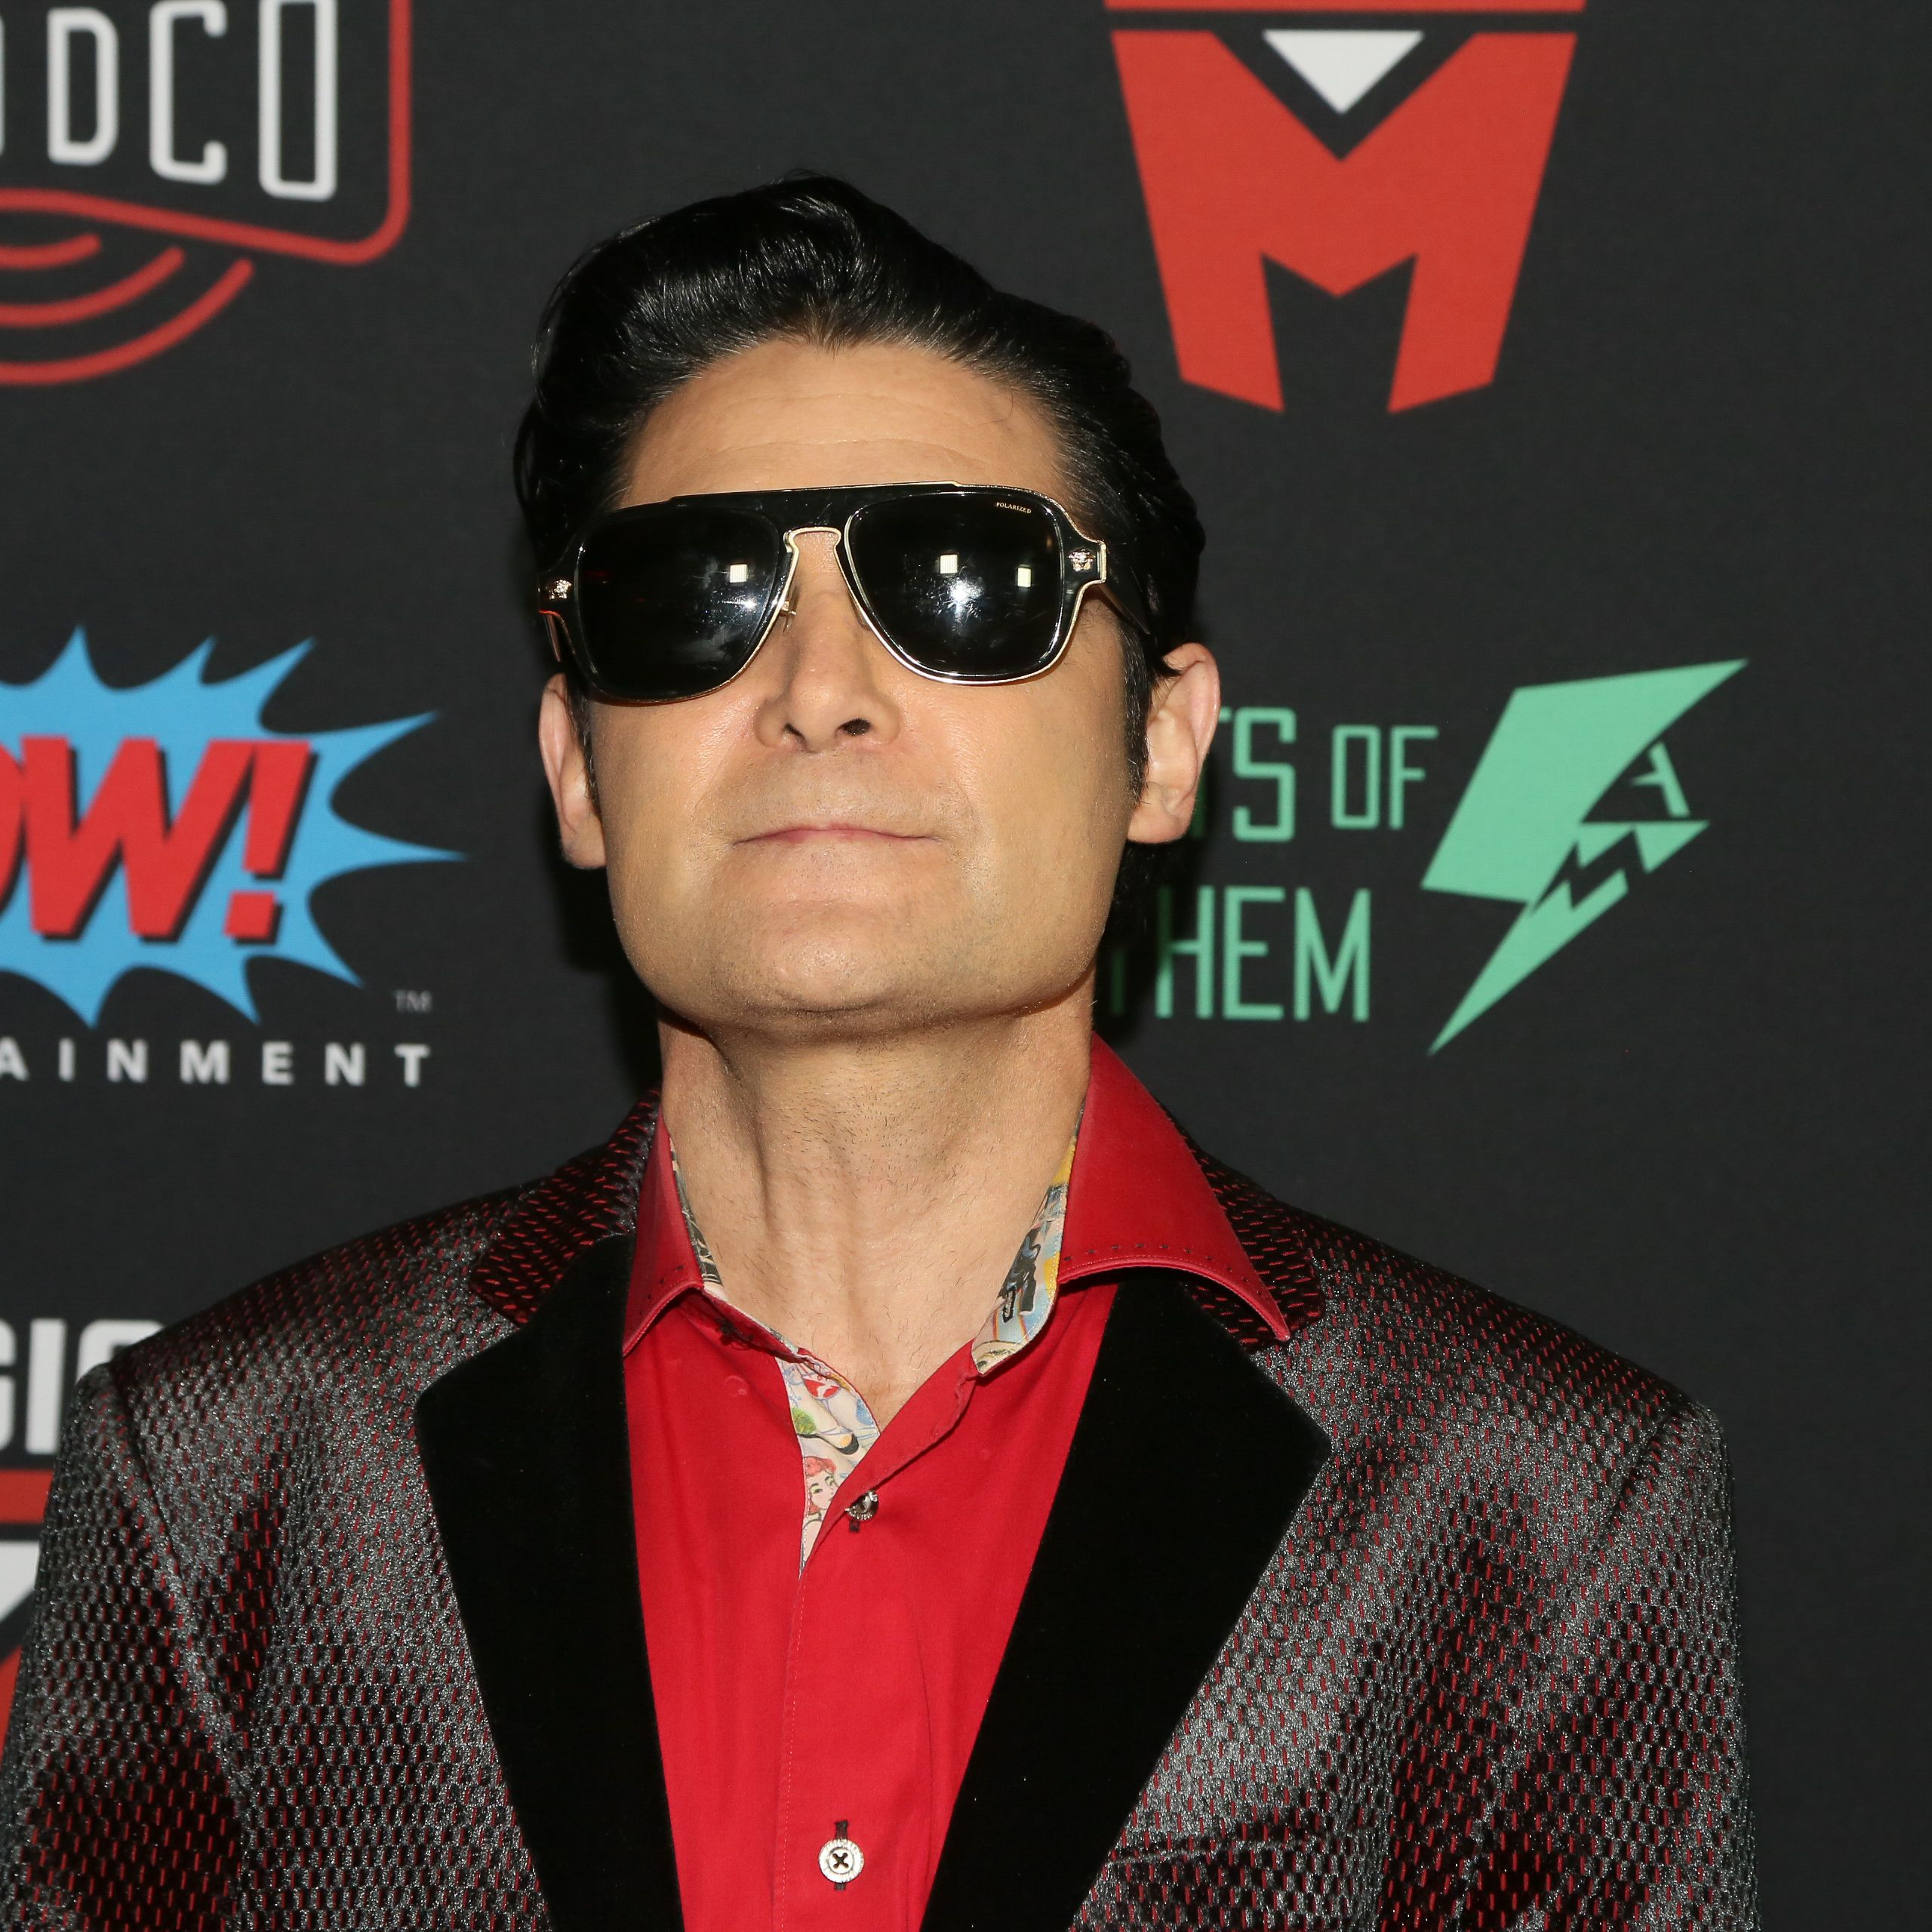 """The Goonies' Corey Feldman admits """"concerns"""" after watching Leaving Neverland"""